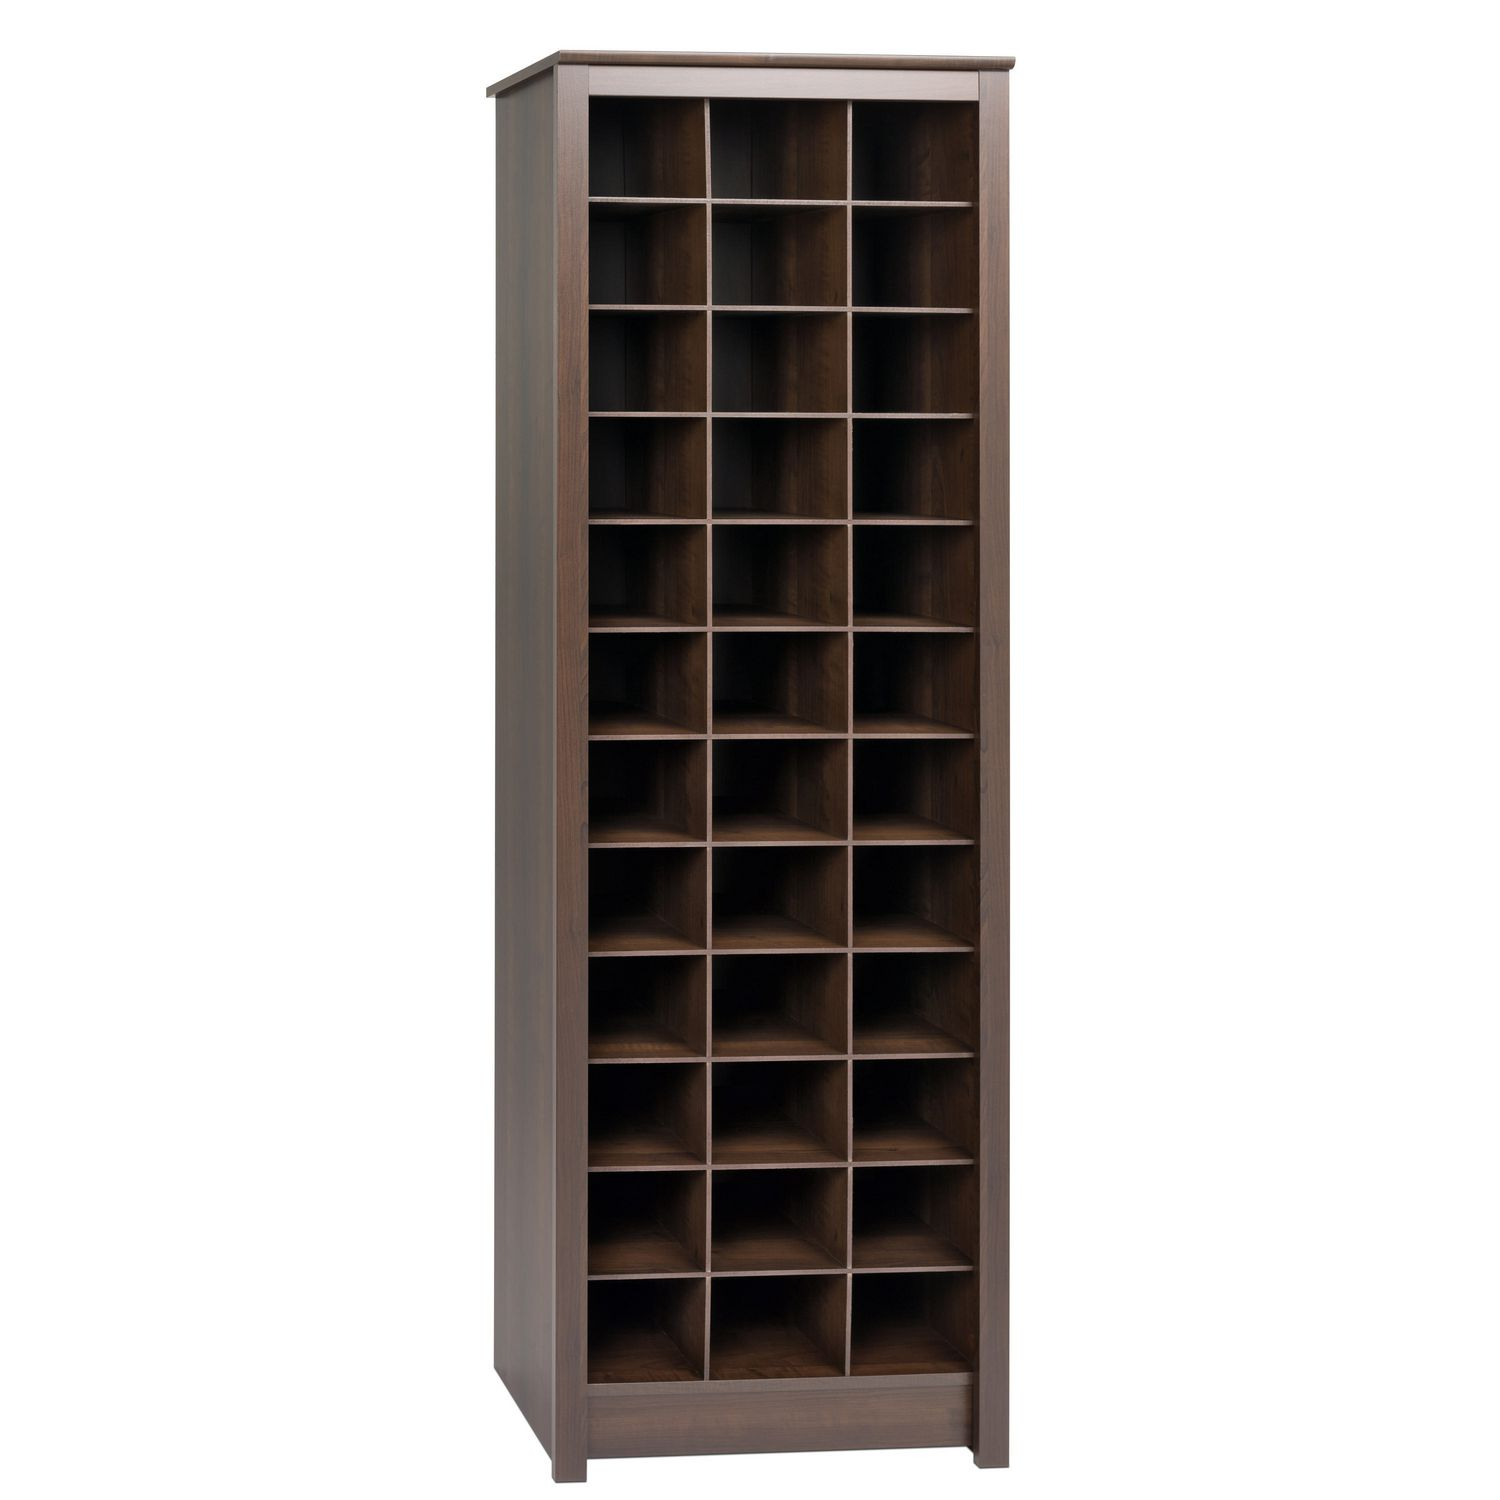 wooden home design furniture rectangle splendid white kopyok cabinets dark shape shoe cabinet brown colors storage organizer unusual